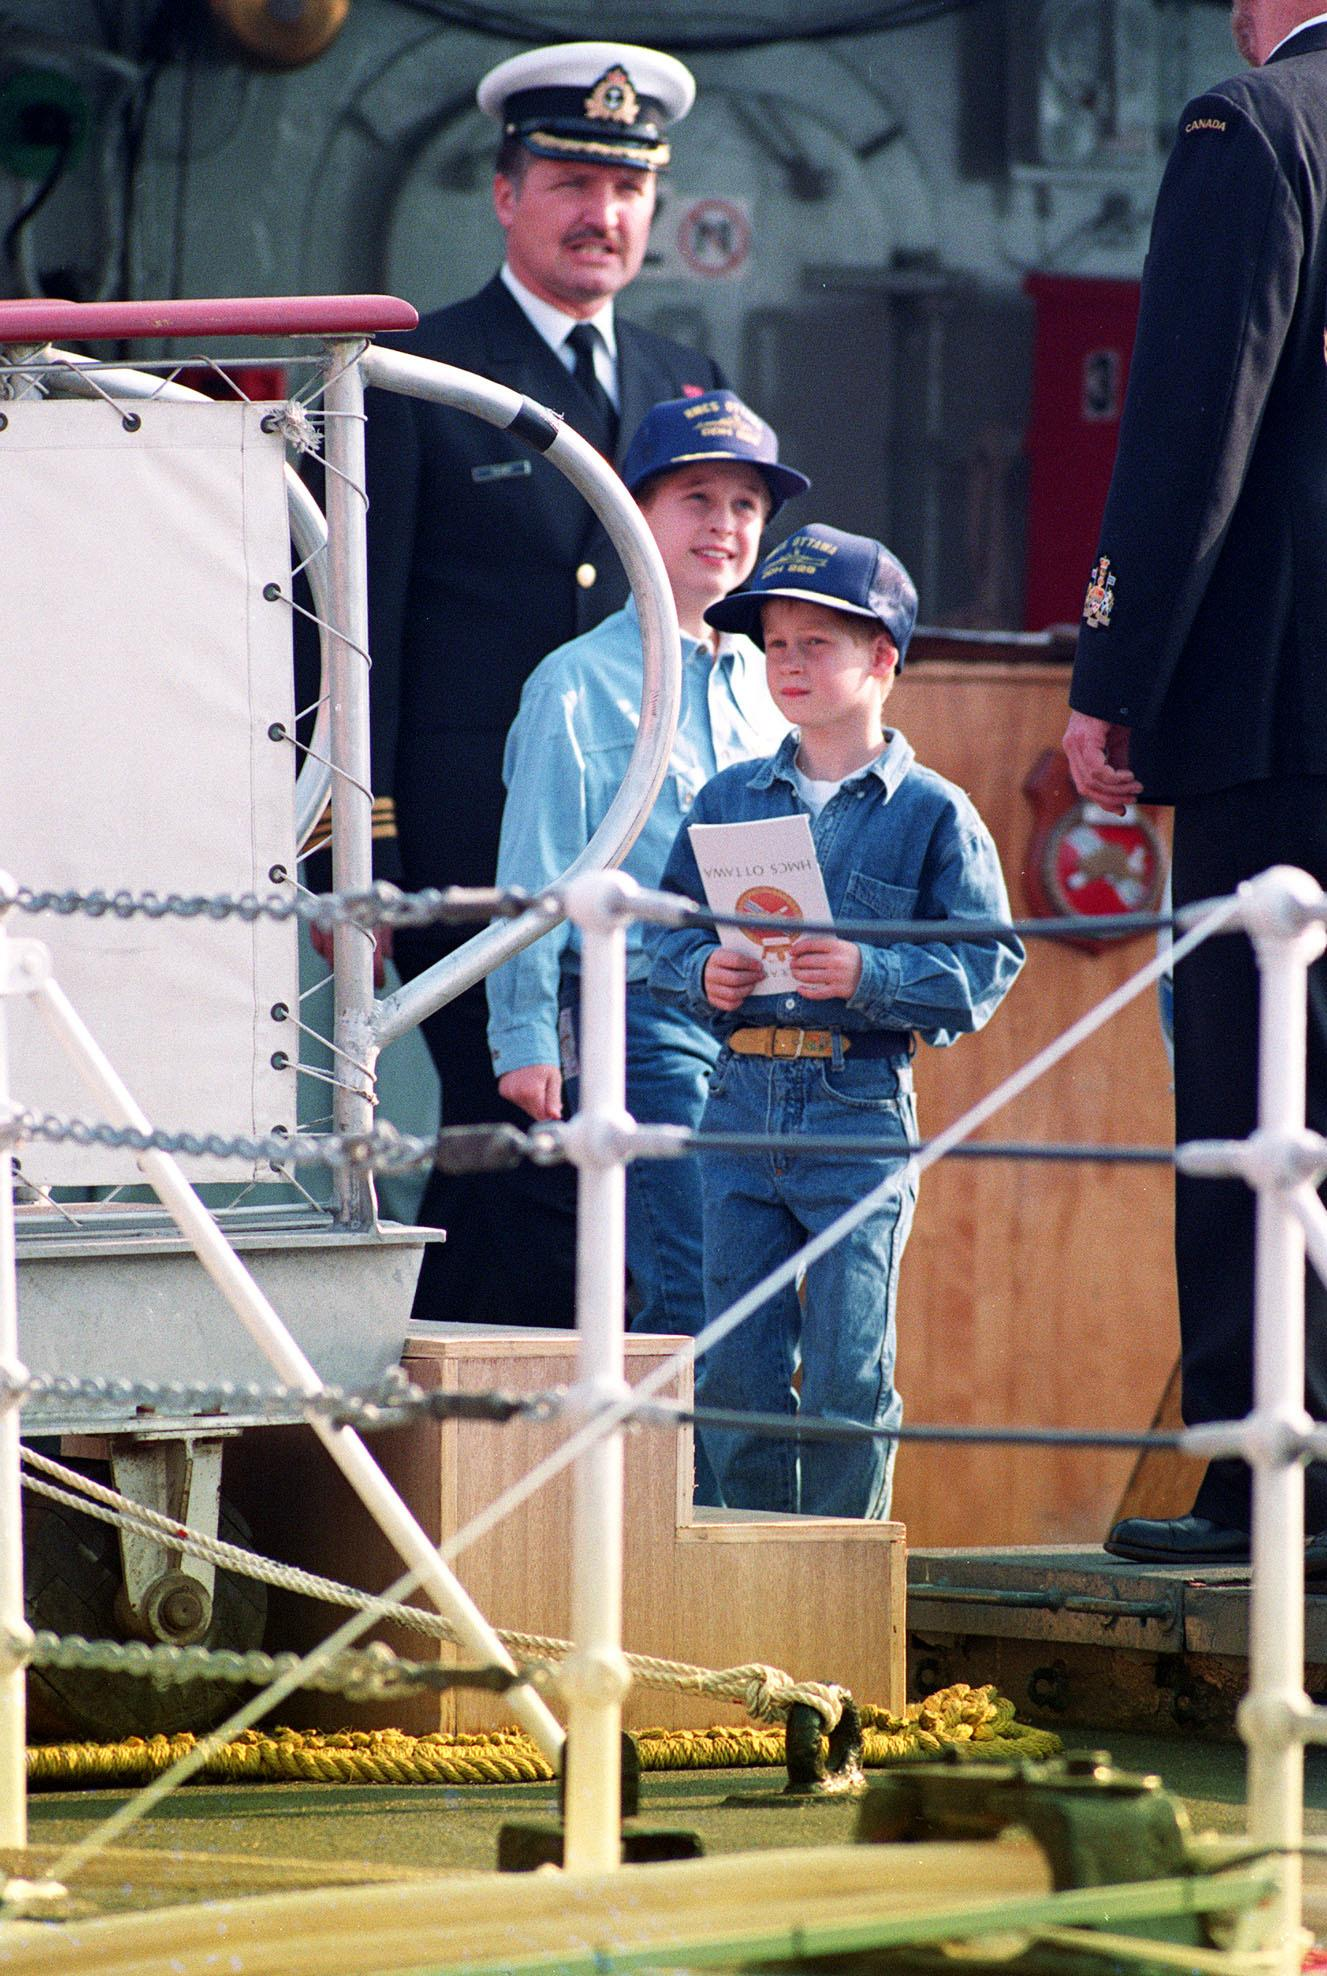 Prince William, 9, and his younger brother, Prince Harry, 7, wear baseball-style caps given to them by the crew of the Canadian frigate HMCS Ottowa as they tour the ship which is moored alongside the Royal Yacht Britannica on the Toronto waterfront.   (Photo by Martin Keene - PA Images/PA Images via Getty Images)